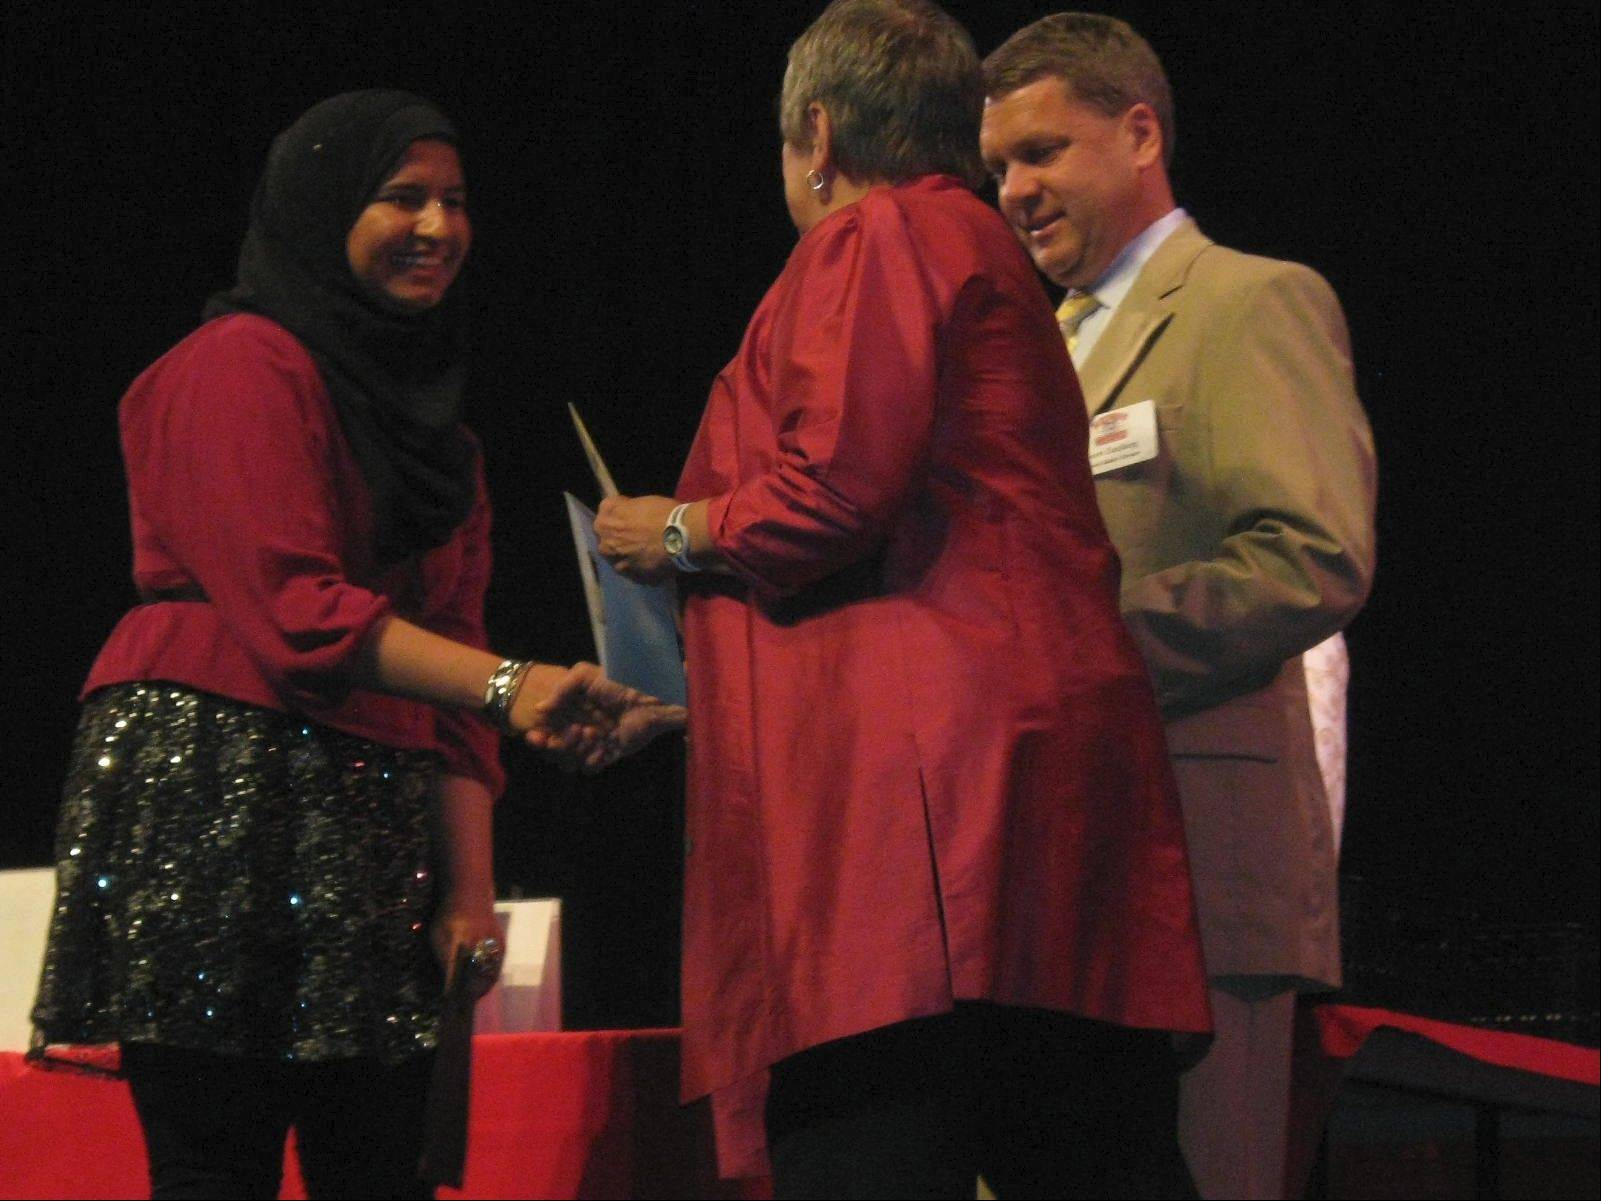 Jeanette Frye, Twenty-first Star Chapter DAR member, presents the Good Citizen Award to Lyba Zia from Maine West.